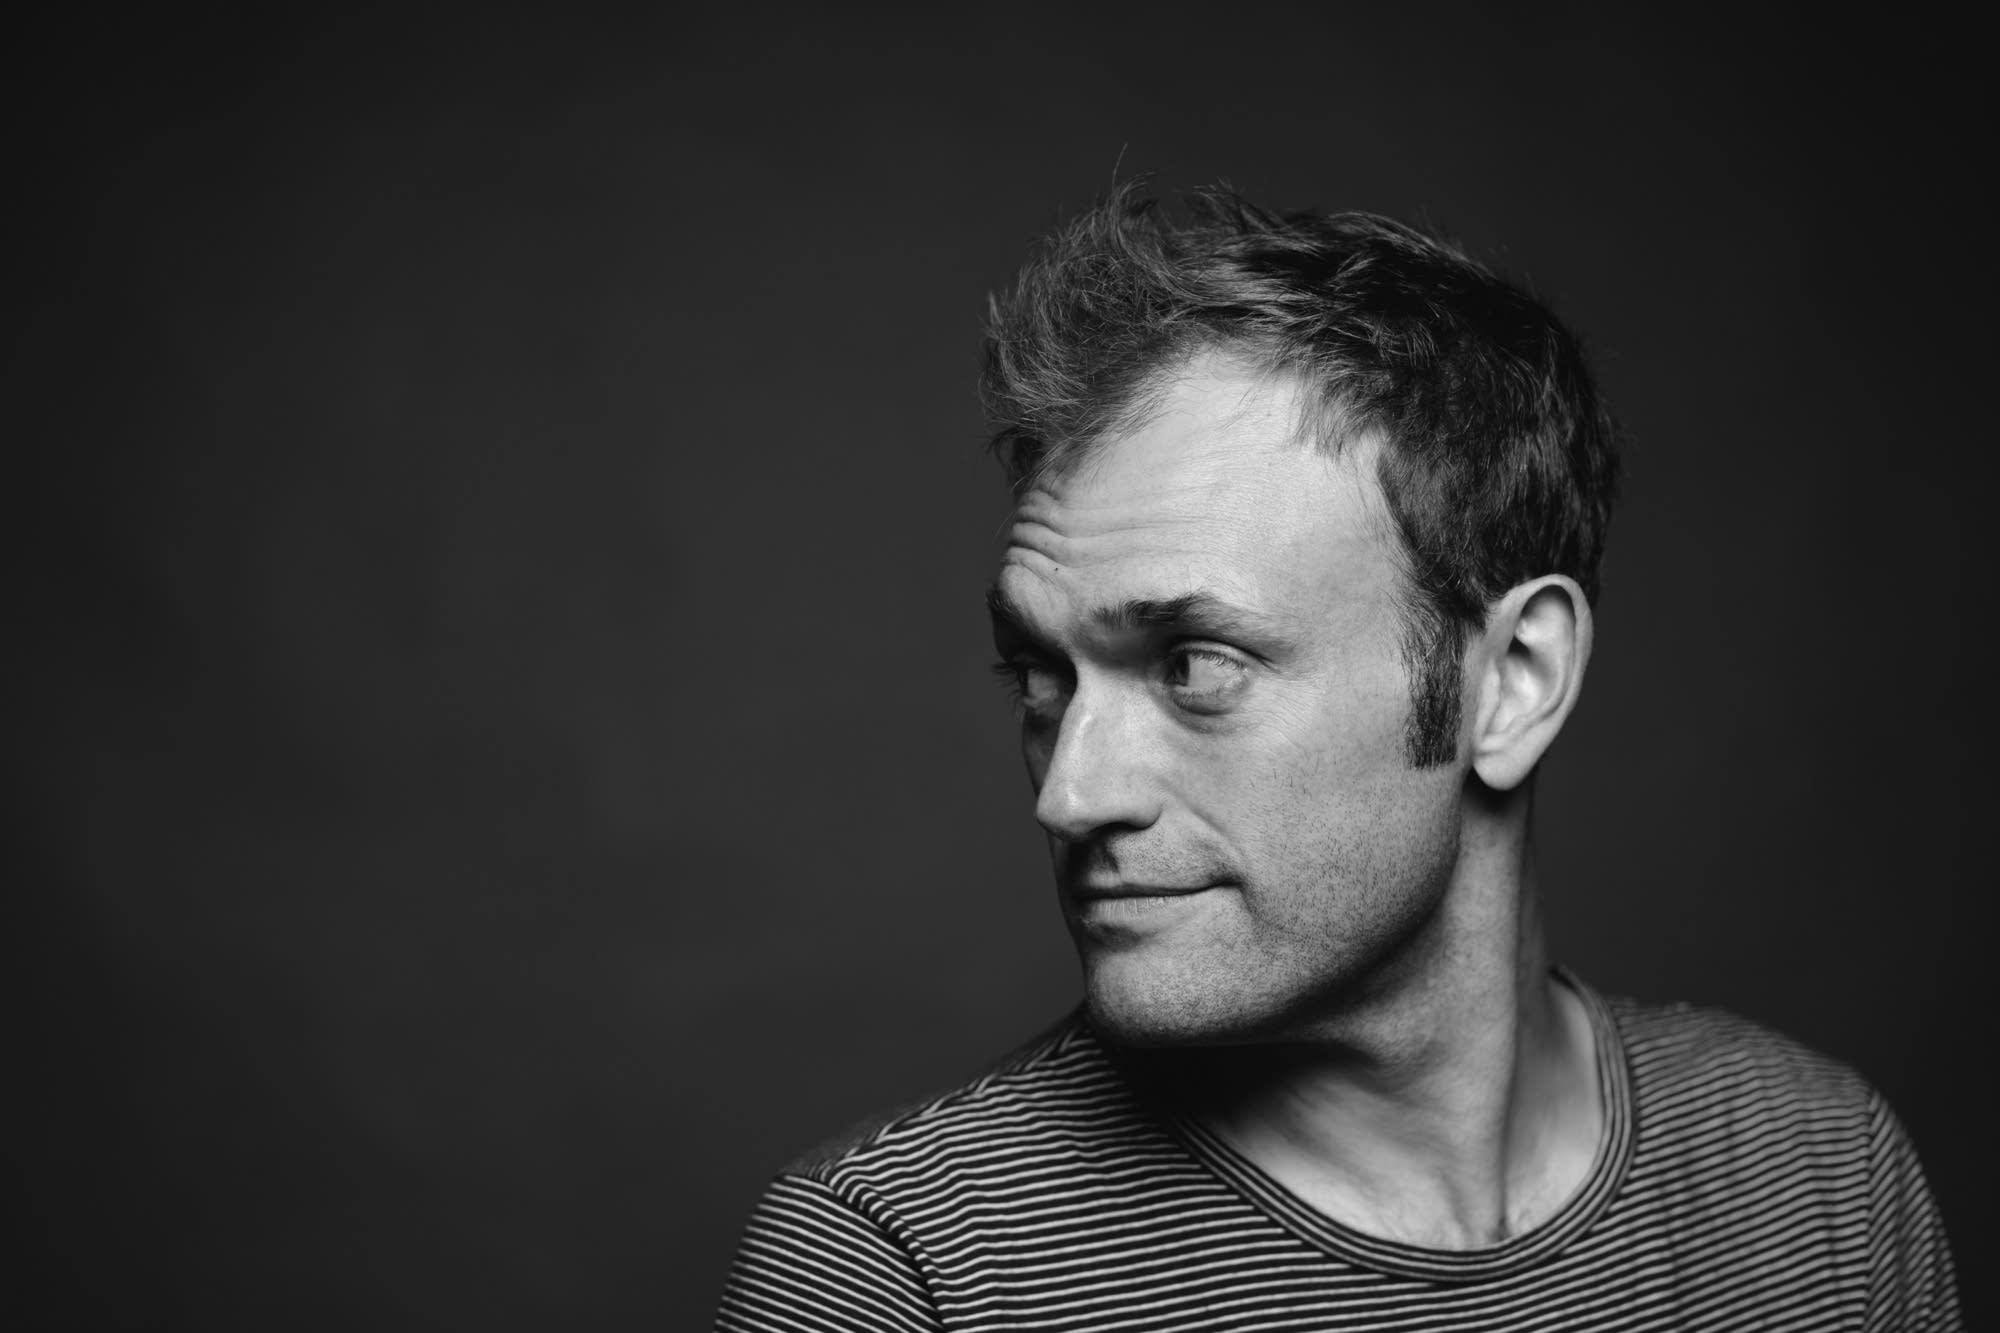 Chris Thile portraits at The Current, 2018